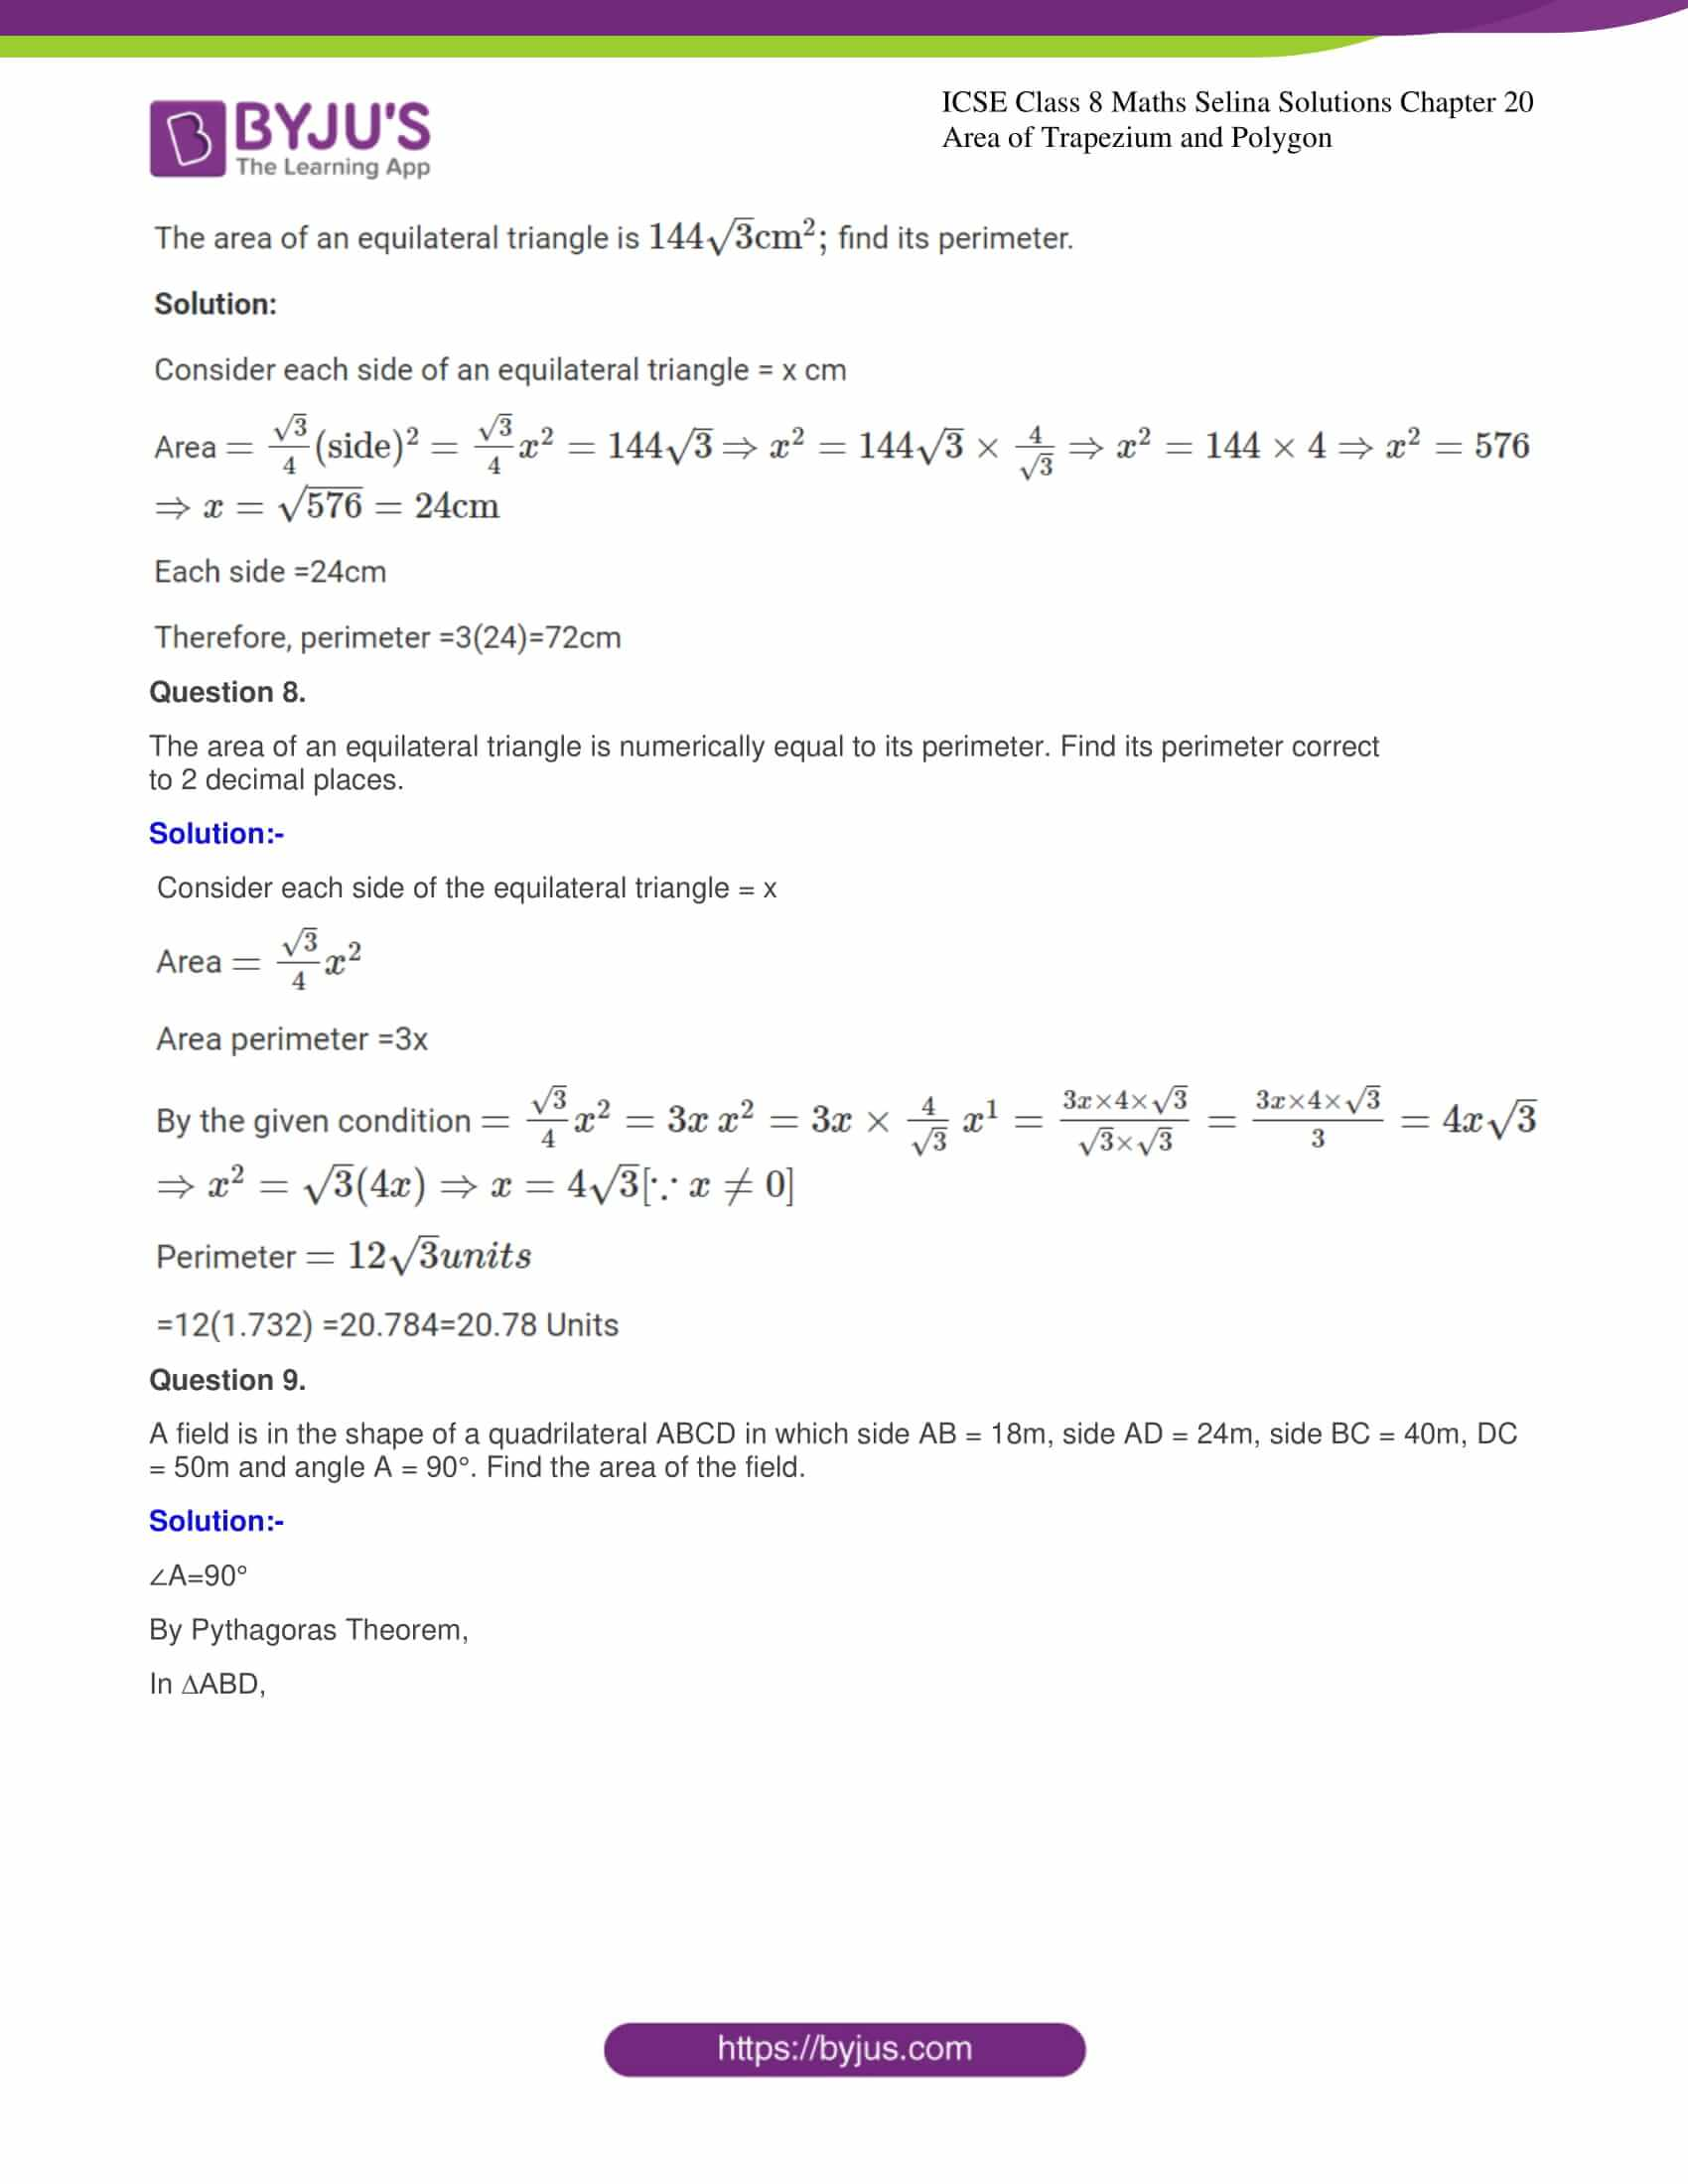 icse class 8 maths may3 selina solutions chapter 20 area of trapezium and polygon 05